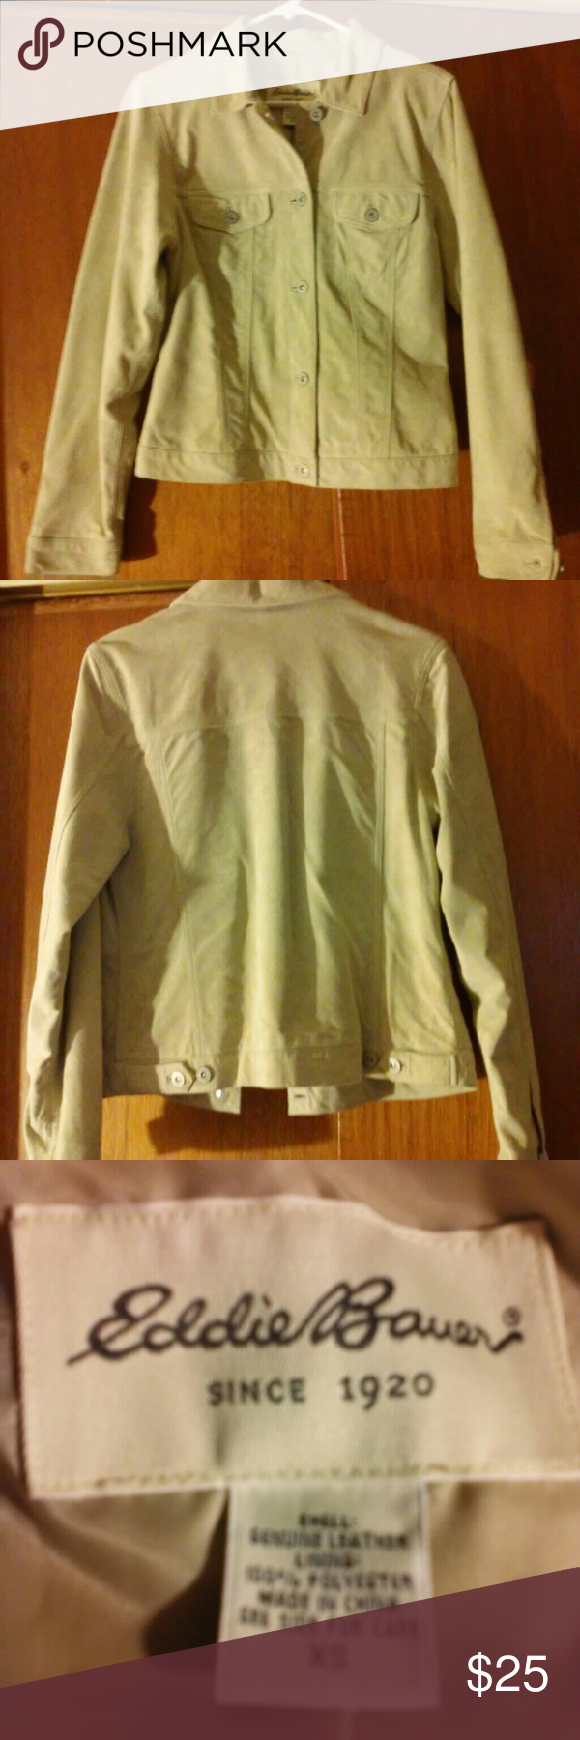 EDDIE BAUER SUEDE Tan in color. Very good condition. Pic 4 is the lining. Eddie Bauer Jackets & Coats